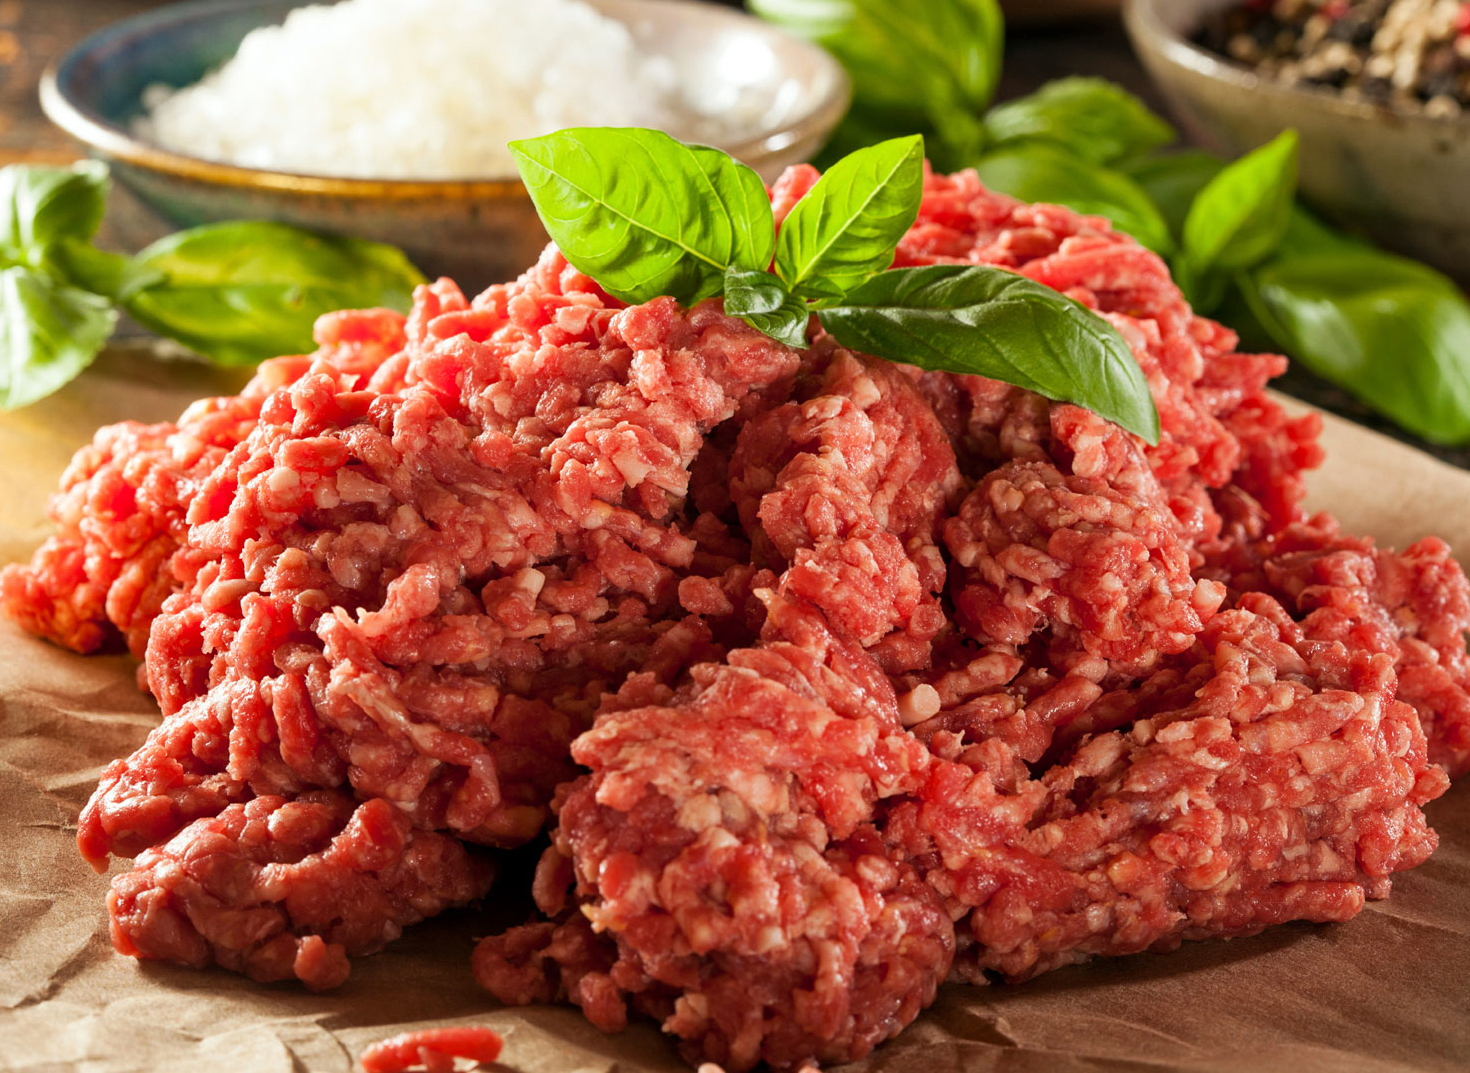 Our Ground Beef